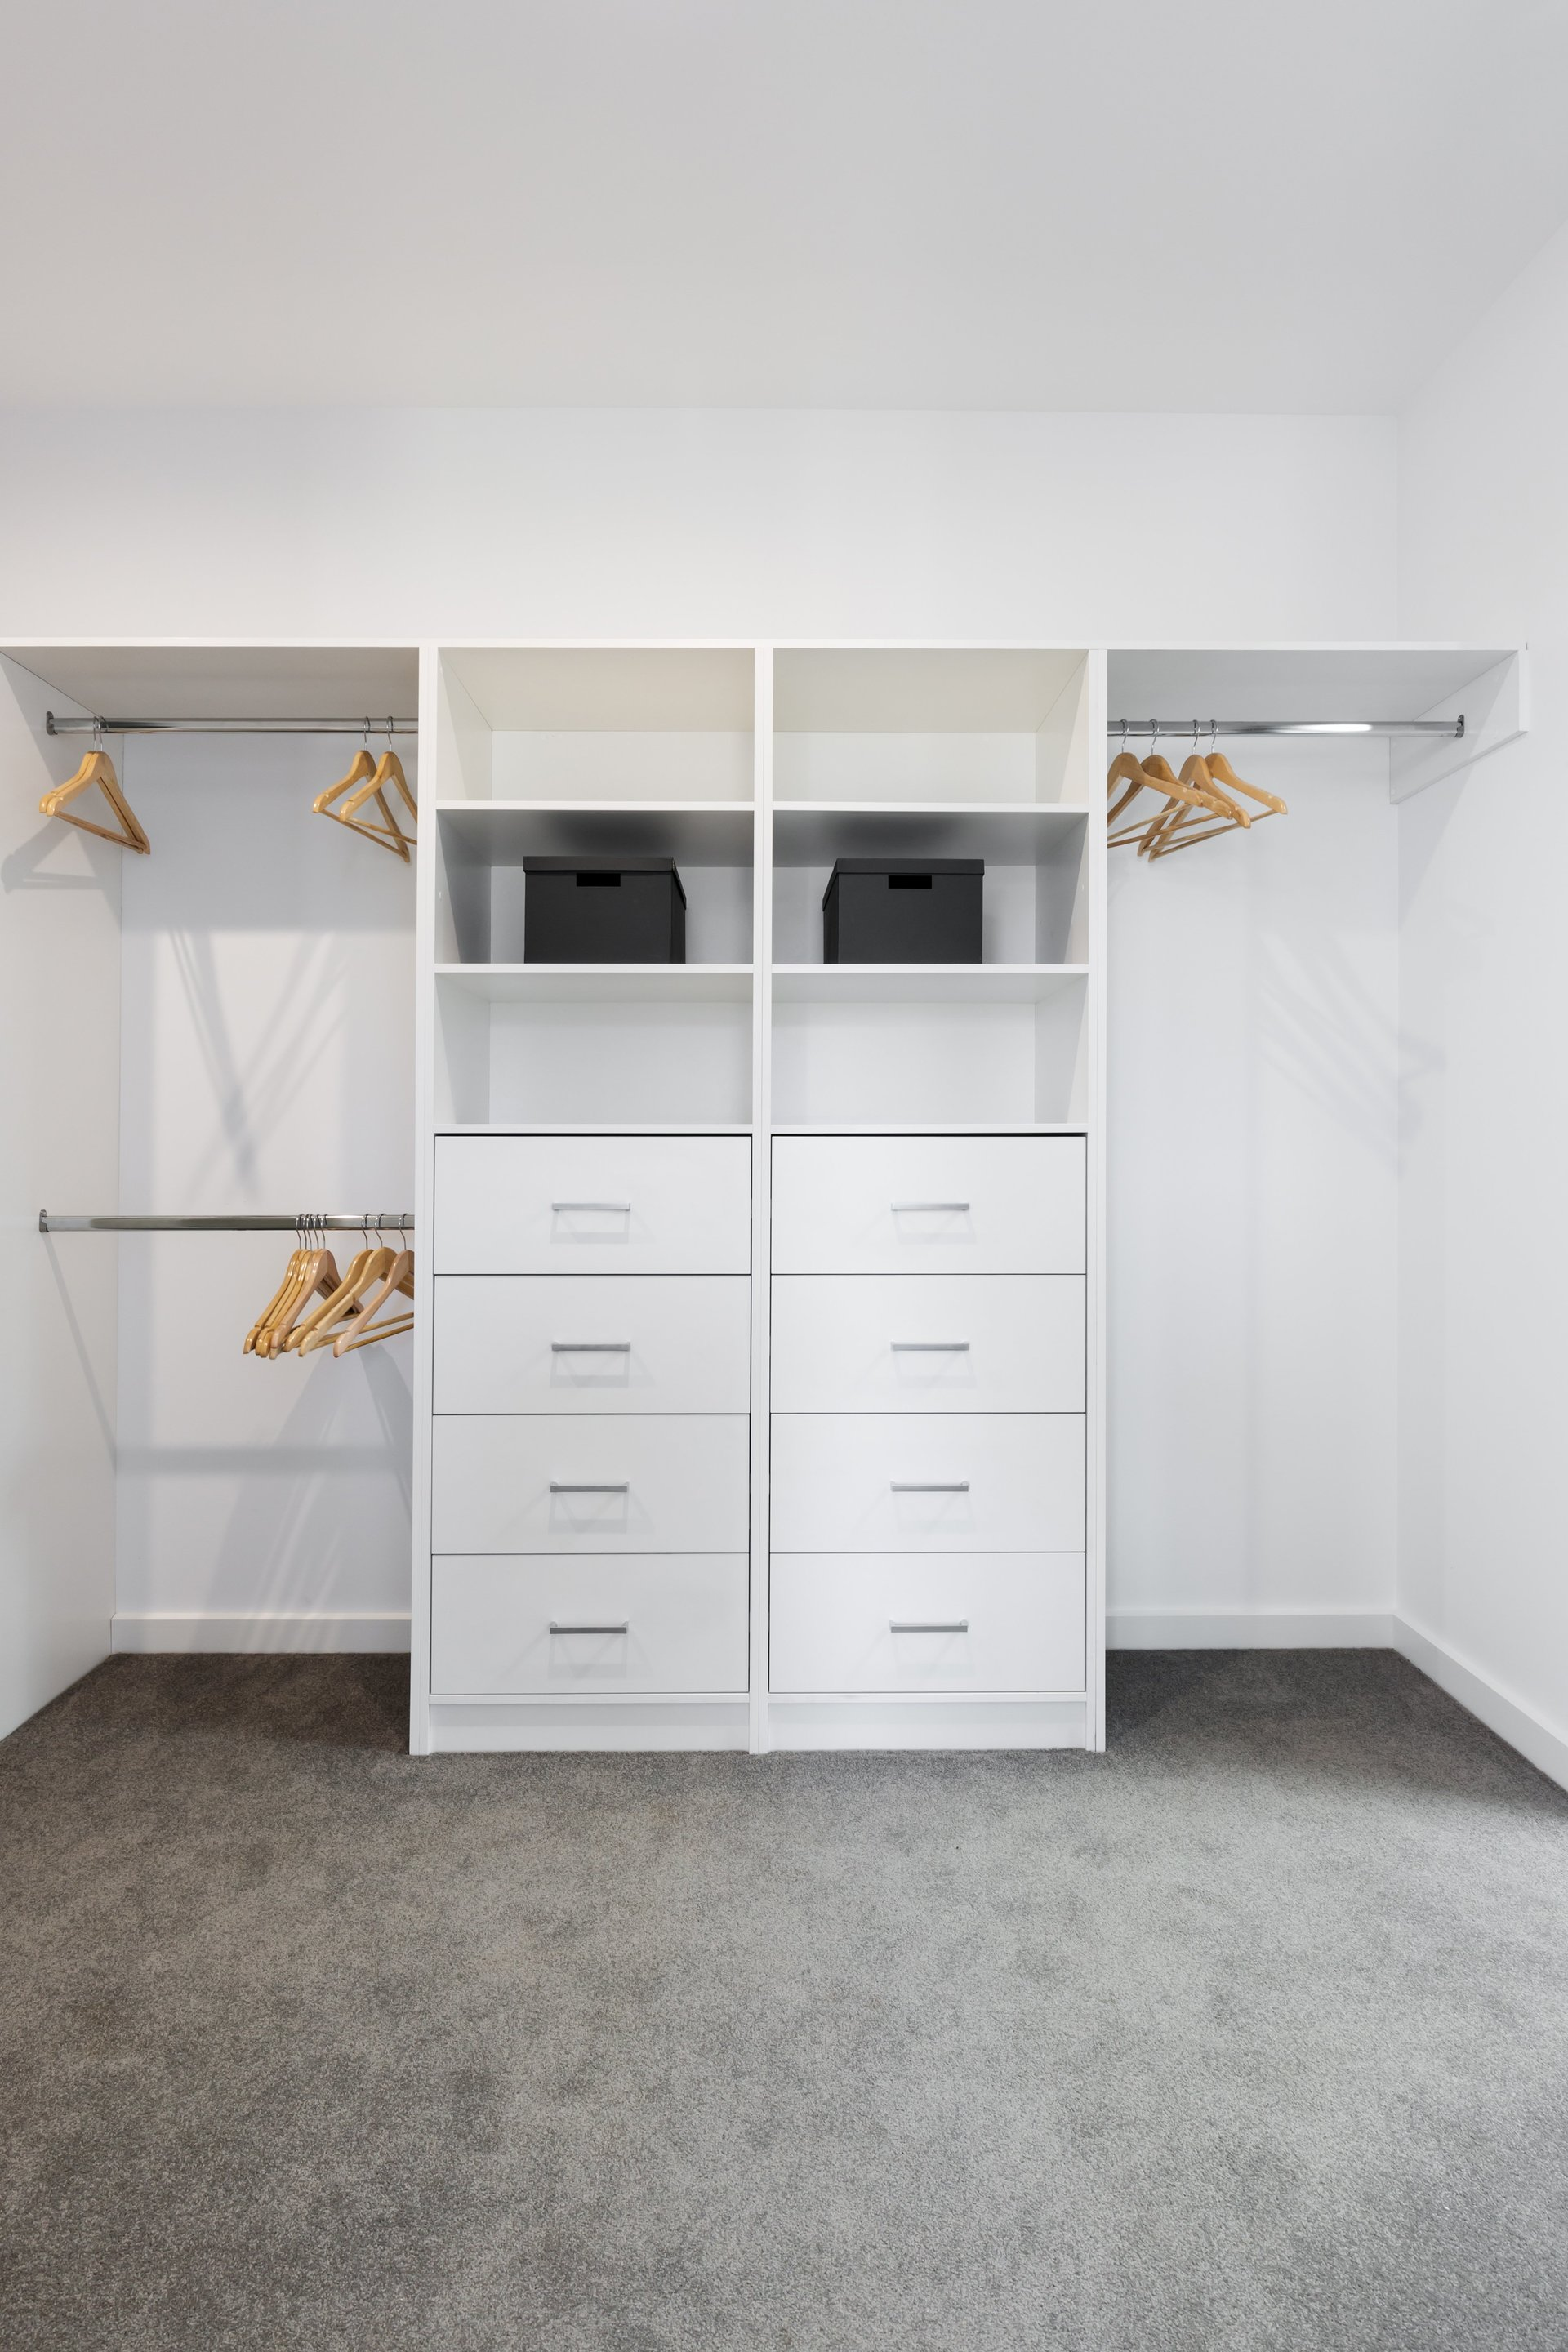 A cabinetry specialist can help renovators and home builders plan the best use of storage space in wardrobes of all sizes.